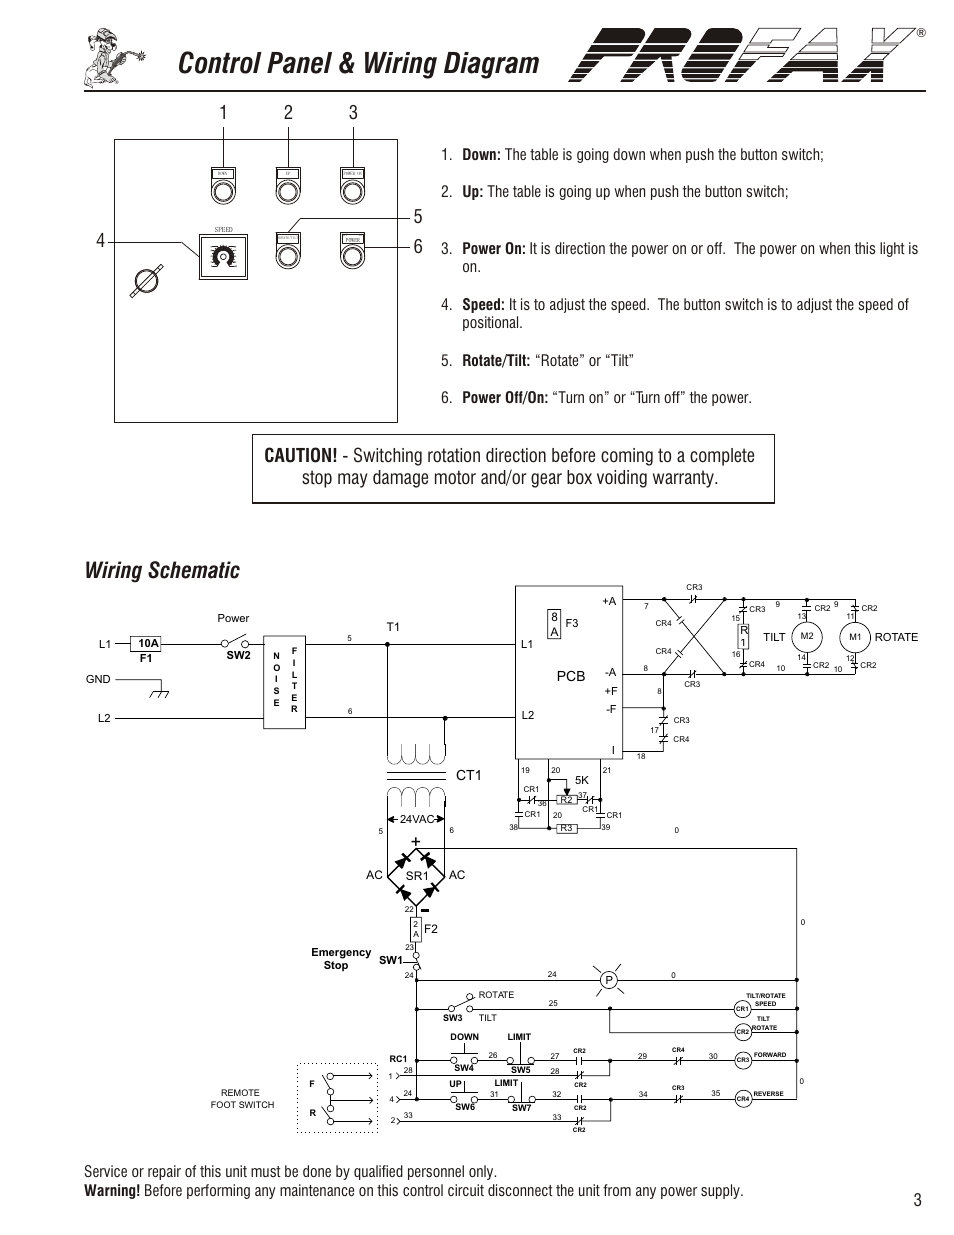 hight resolution of wp 500 general operating instructions control panel wiring diagram wiring schematic